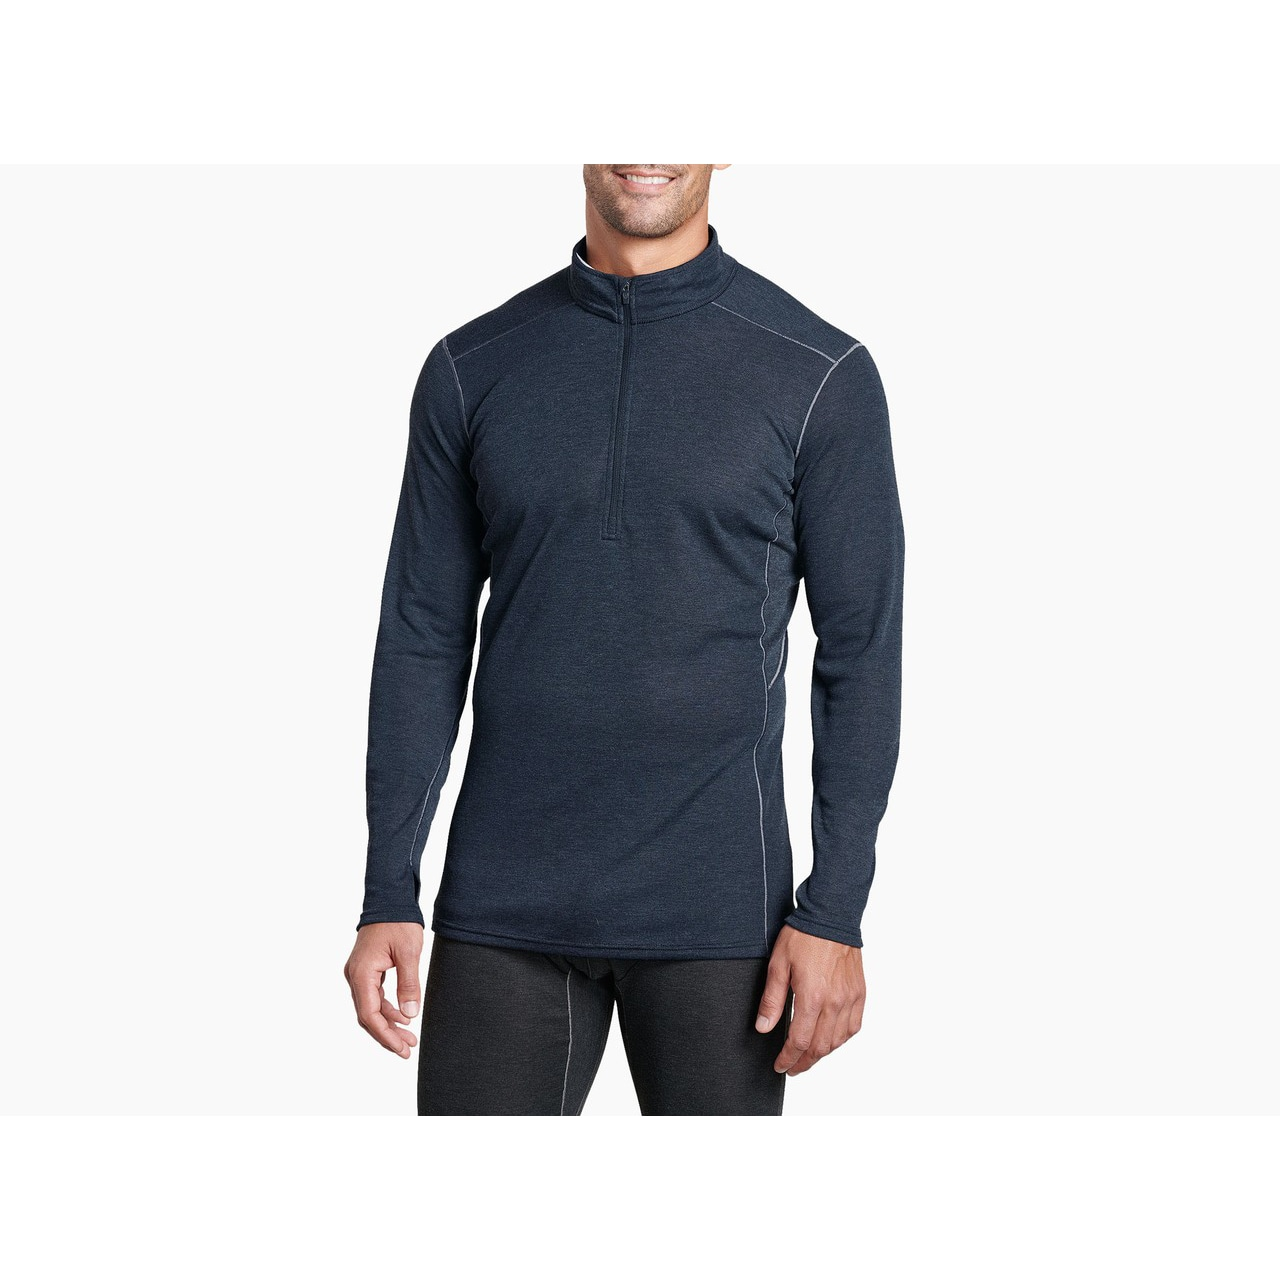 Akkomplice Zip Neck - Men's